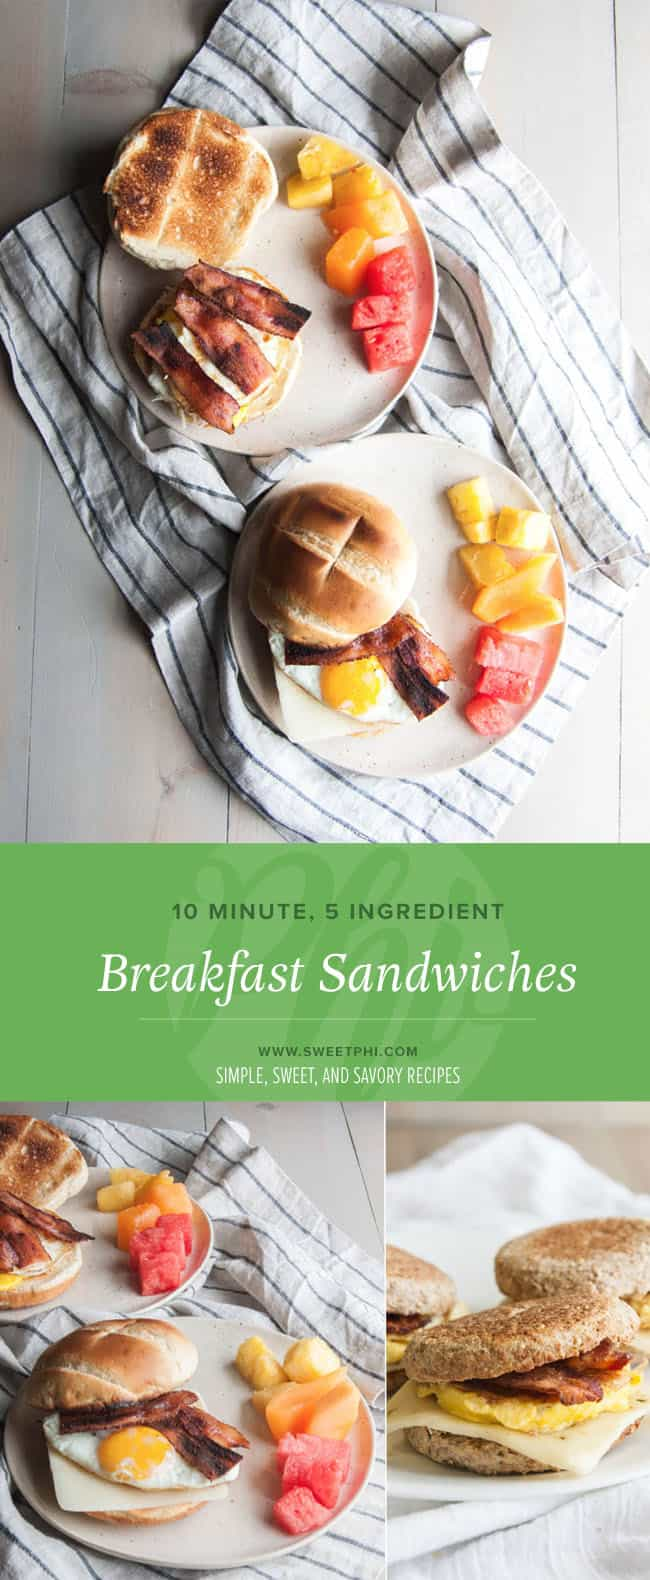 A quick and easy breakfast or brunch recipe that is only 5 ingredients!